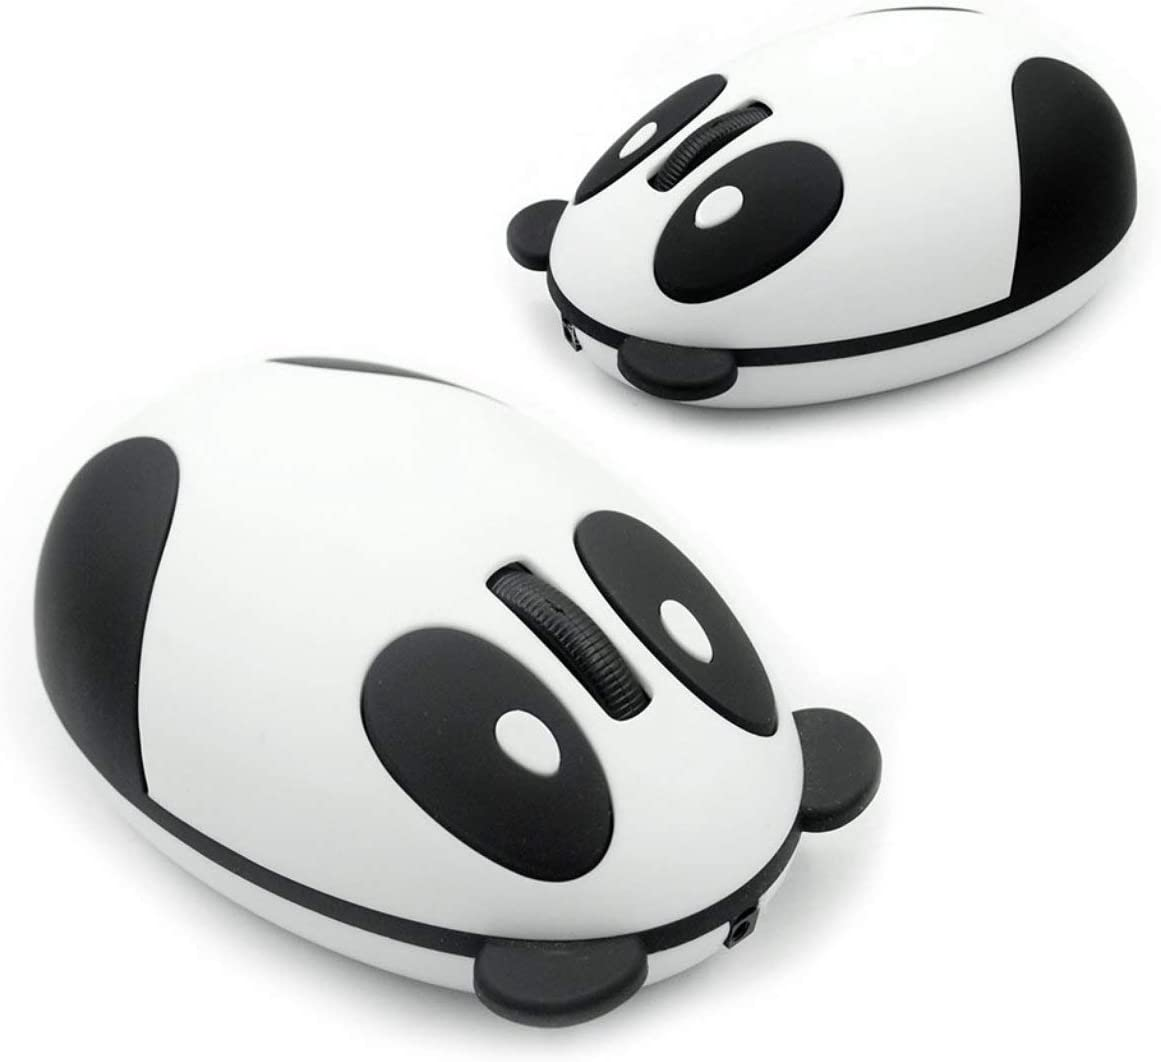 Liobaba Ergonomic 2.4GHz Wireless Rechargeable Optical Panda Shape Computer Mouse Gaming Professional Gamer Mouse